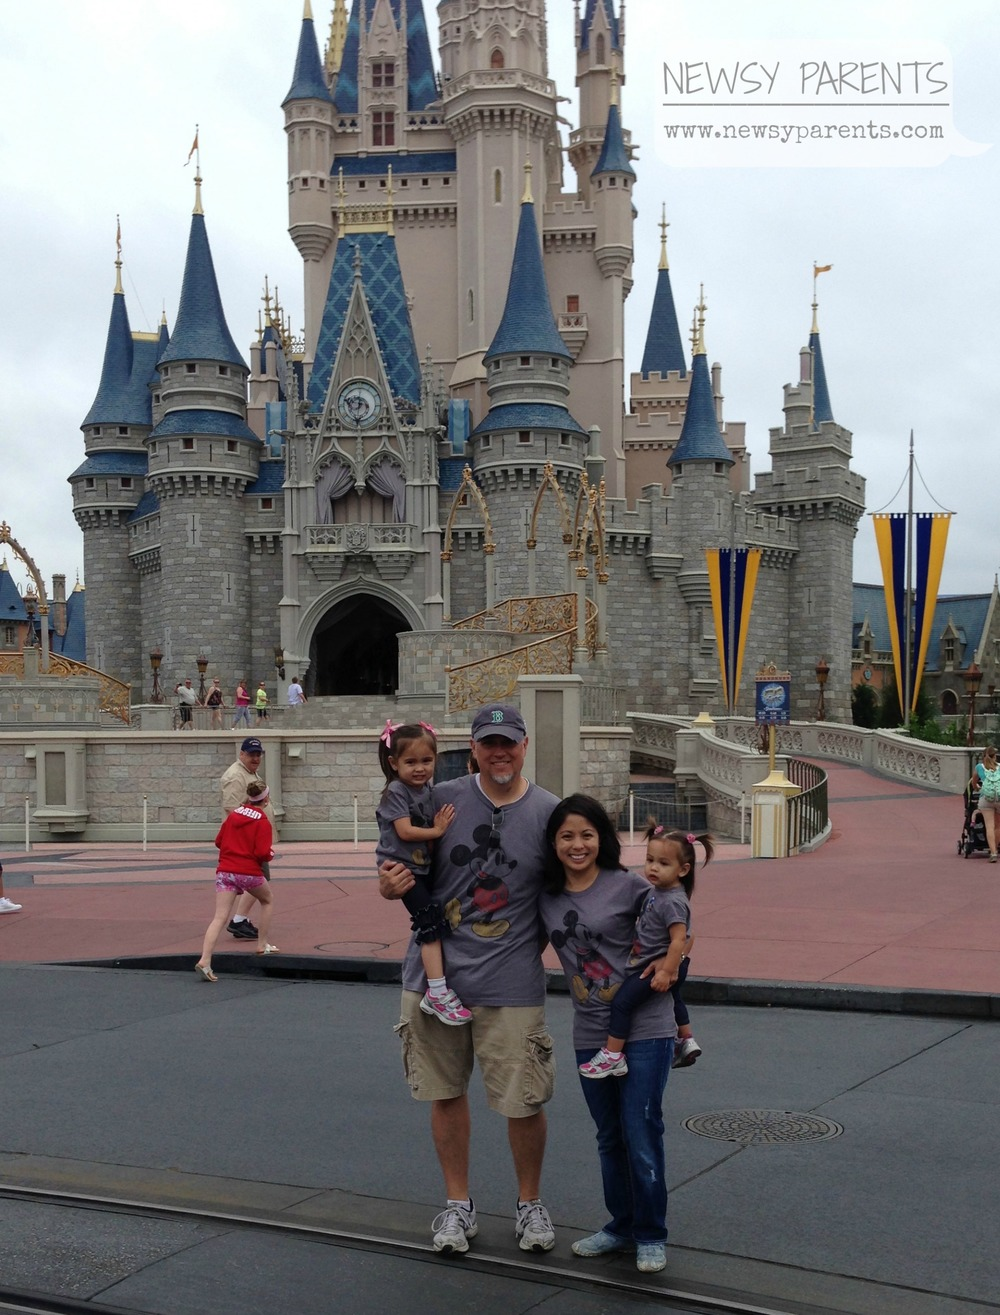 First family picture in front of the famous Cinderella Castle at Walt Disney World wearing our matching Mickey Mouse shirts.